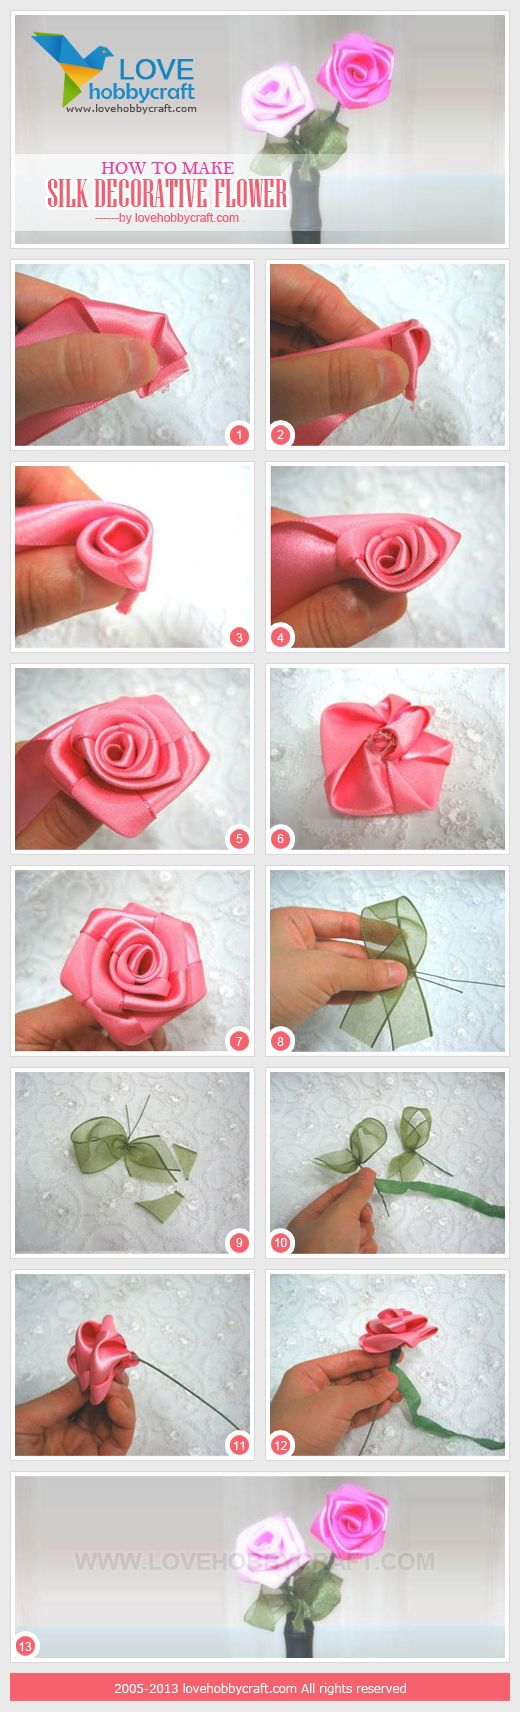 25 best ribbon rose images on pinterest fabric flowers ribbon how to make silk decorative flower mightylinksfo